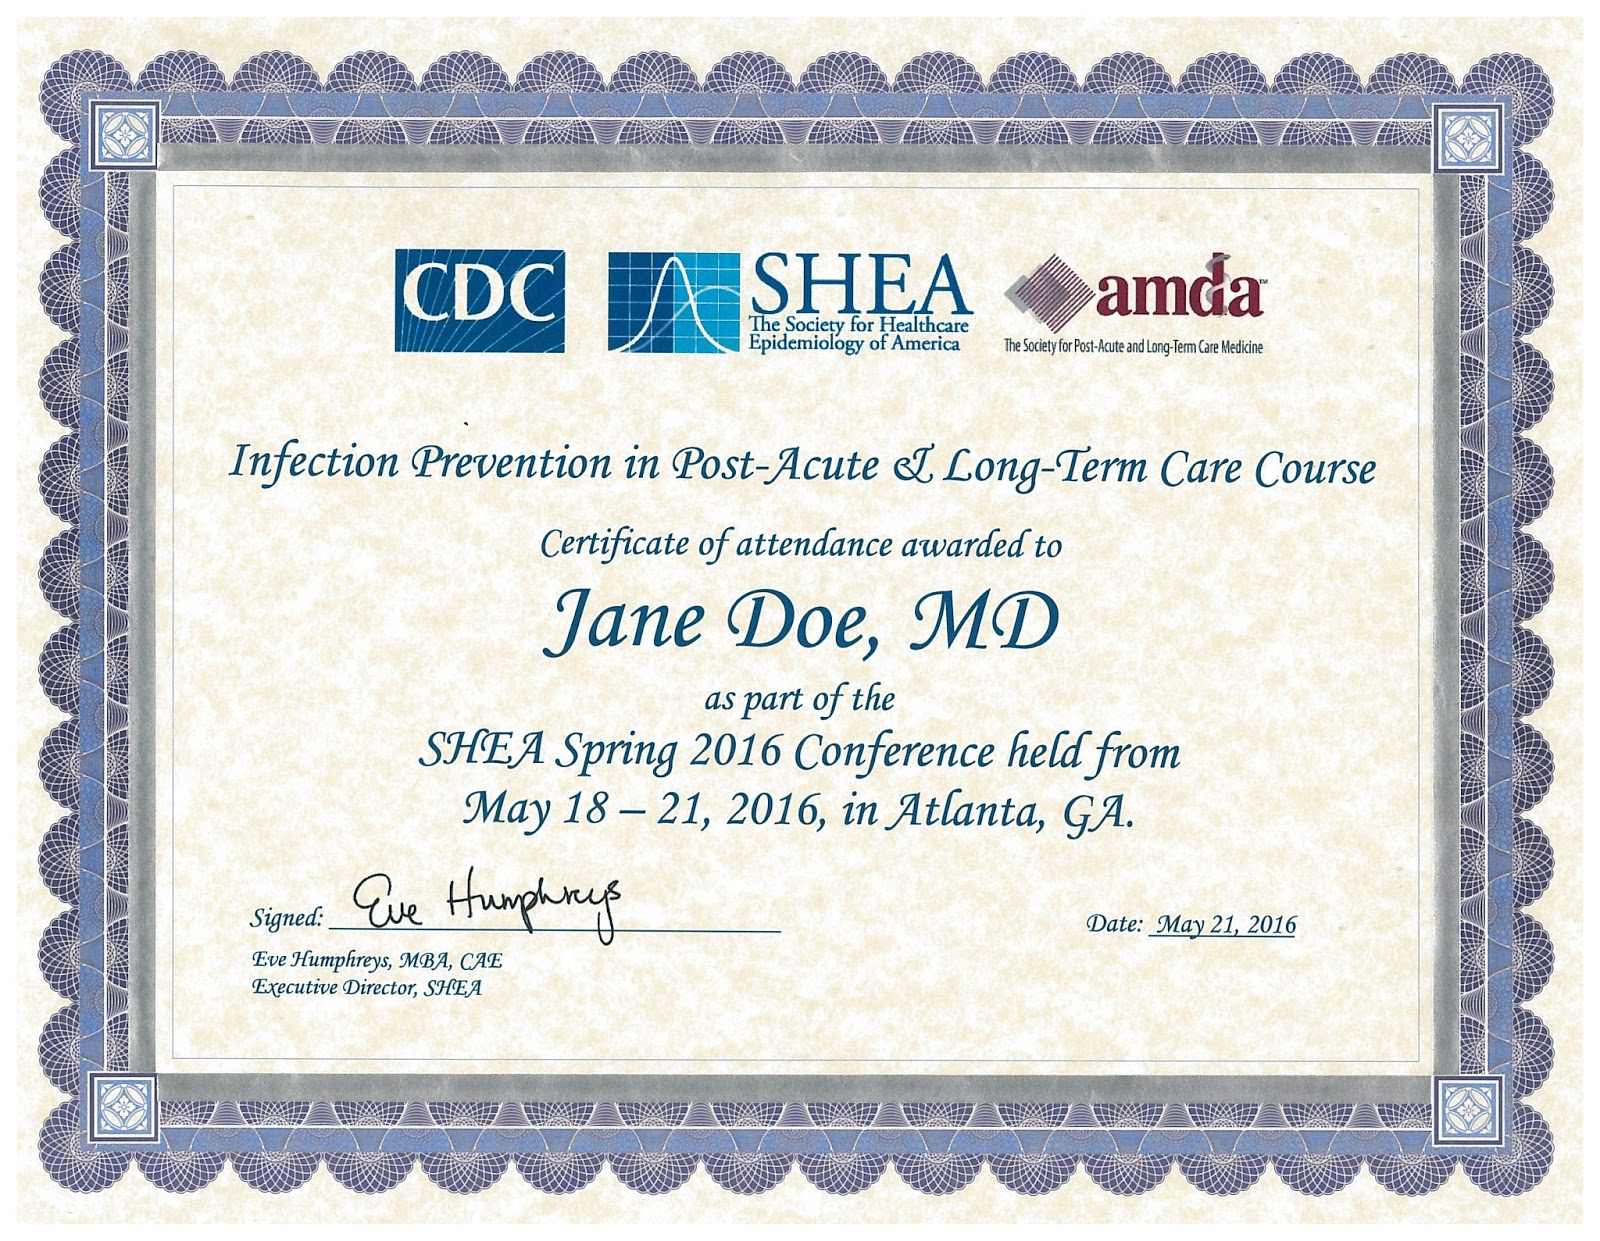 Sheacdcamda Sponsored Post Acute And Long Term Care Certificate